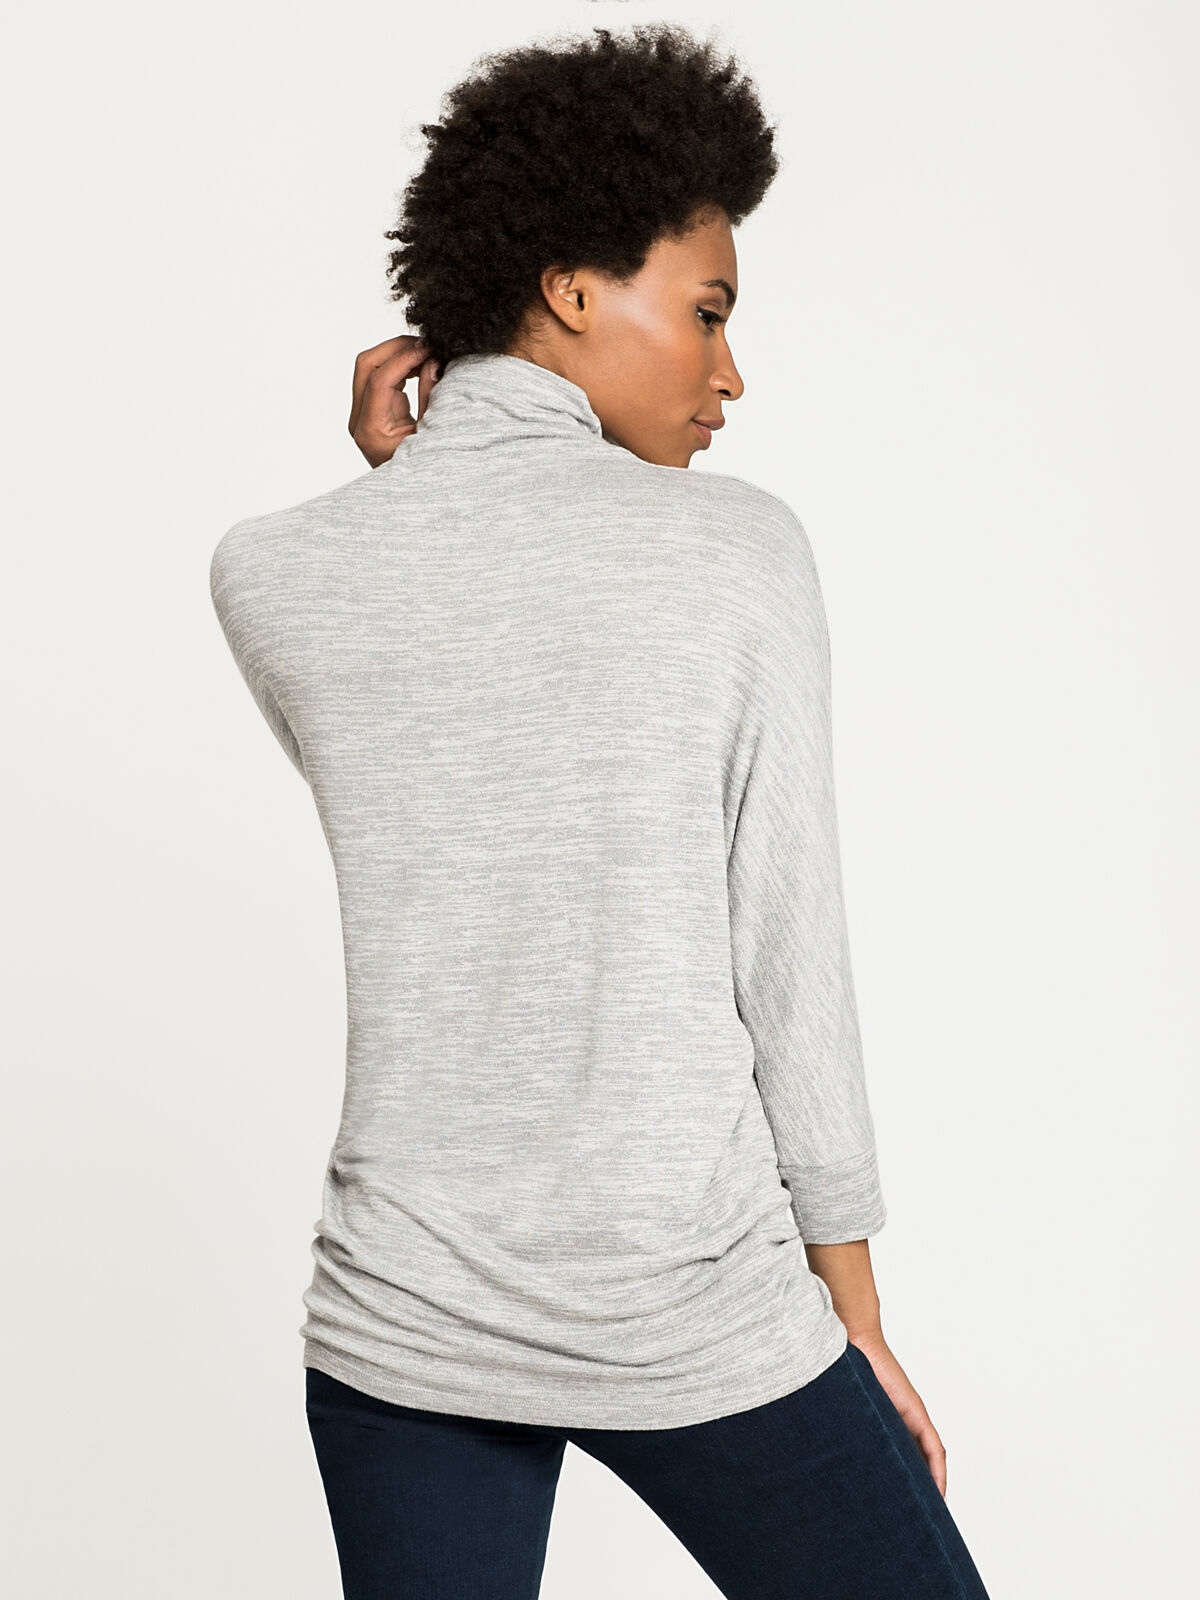 Every Occasion Mock Top